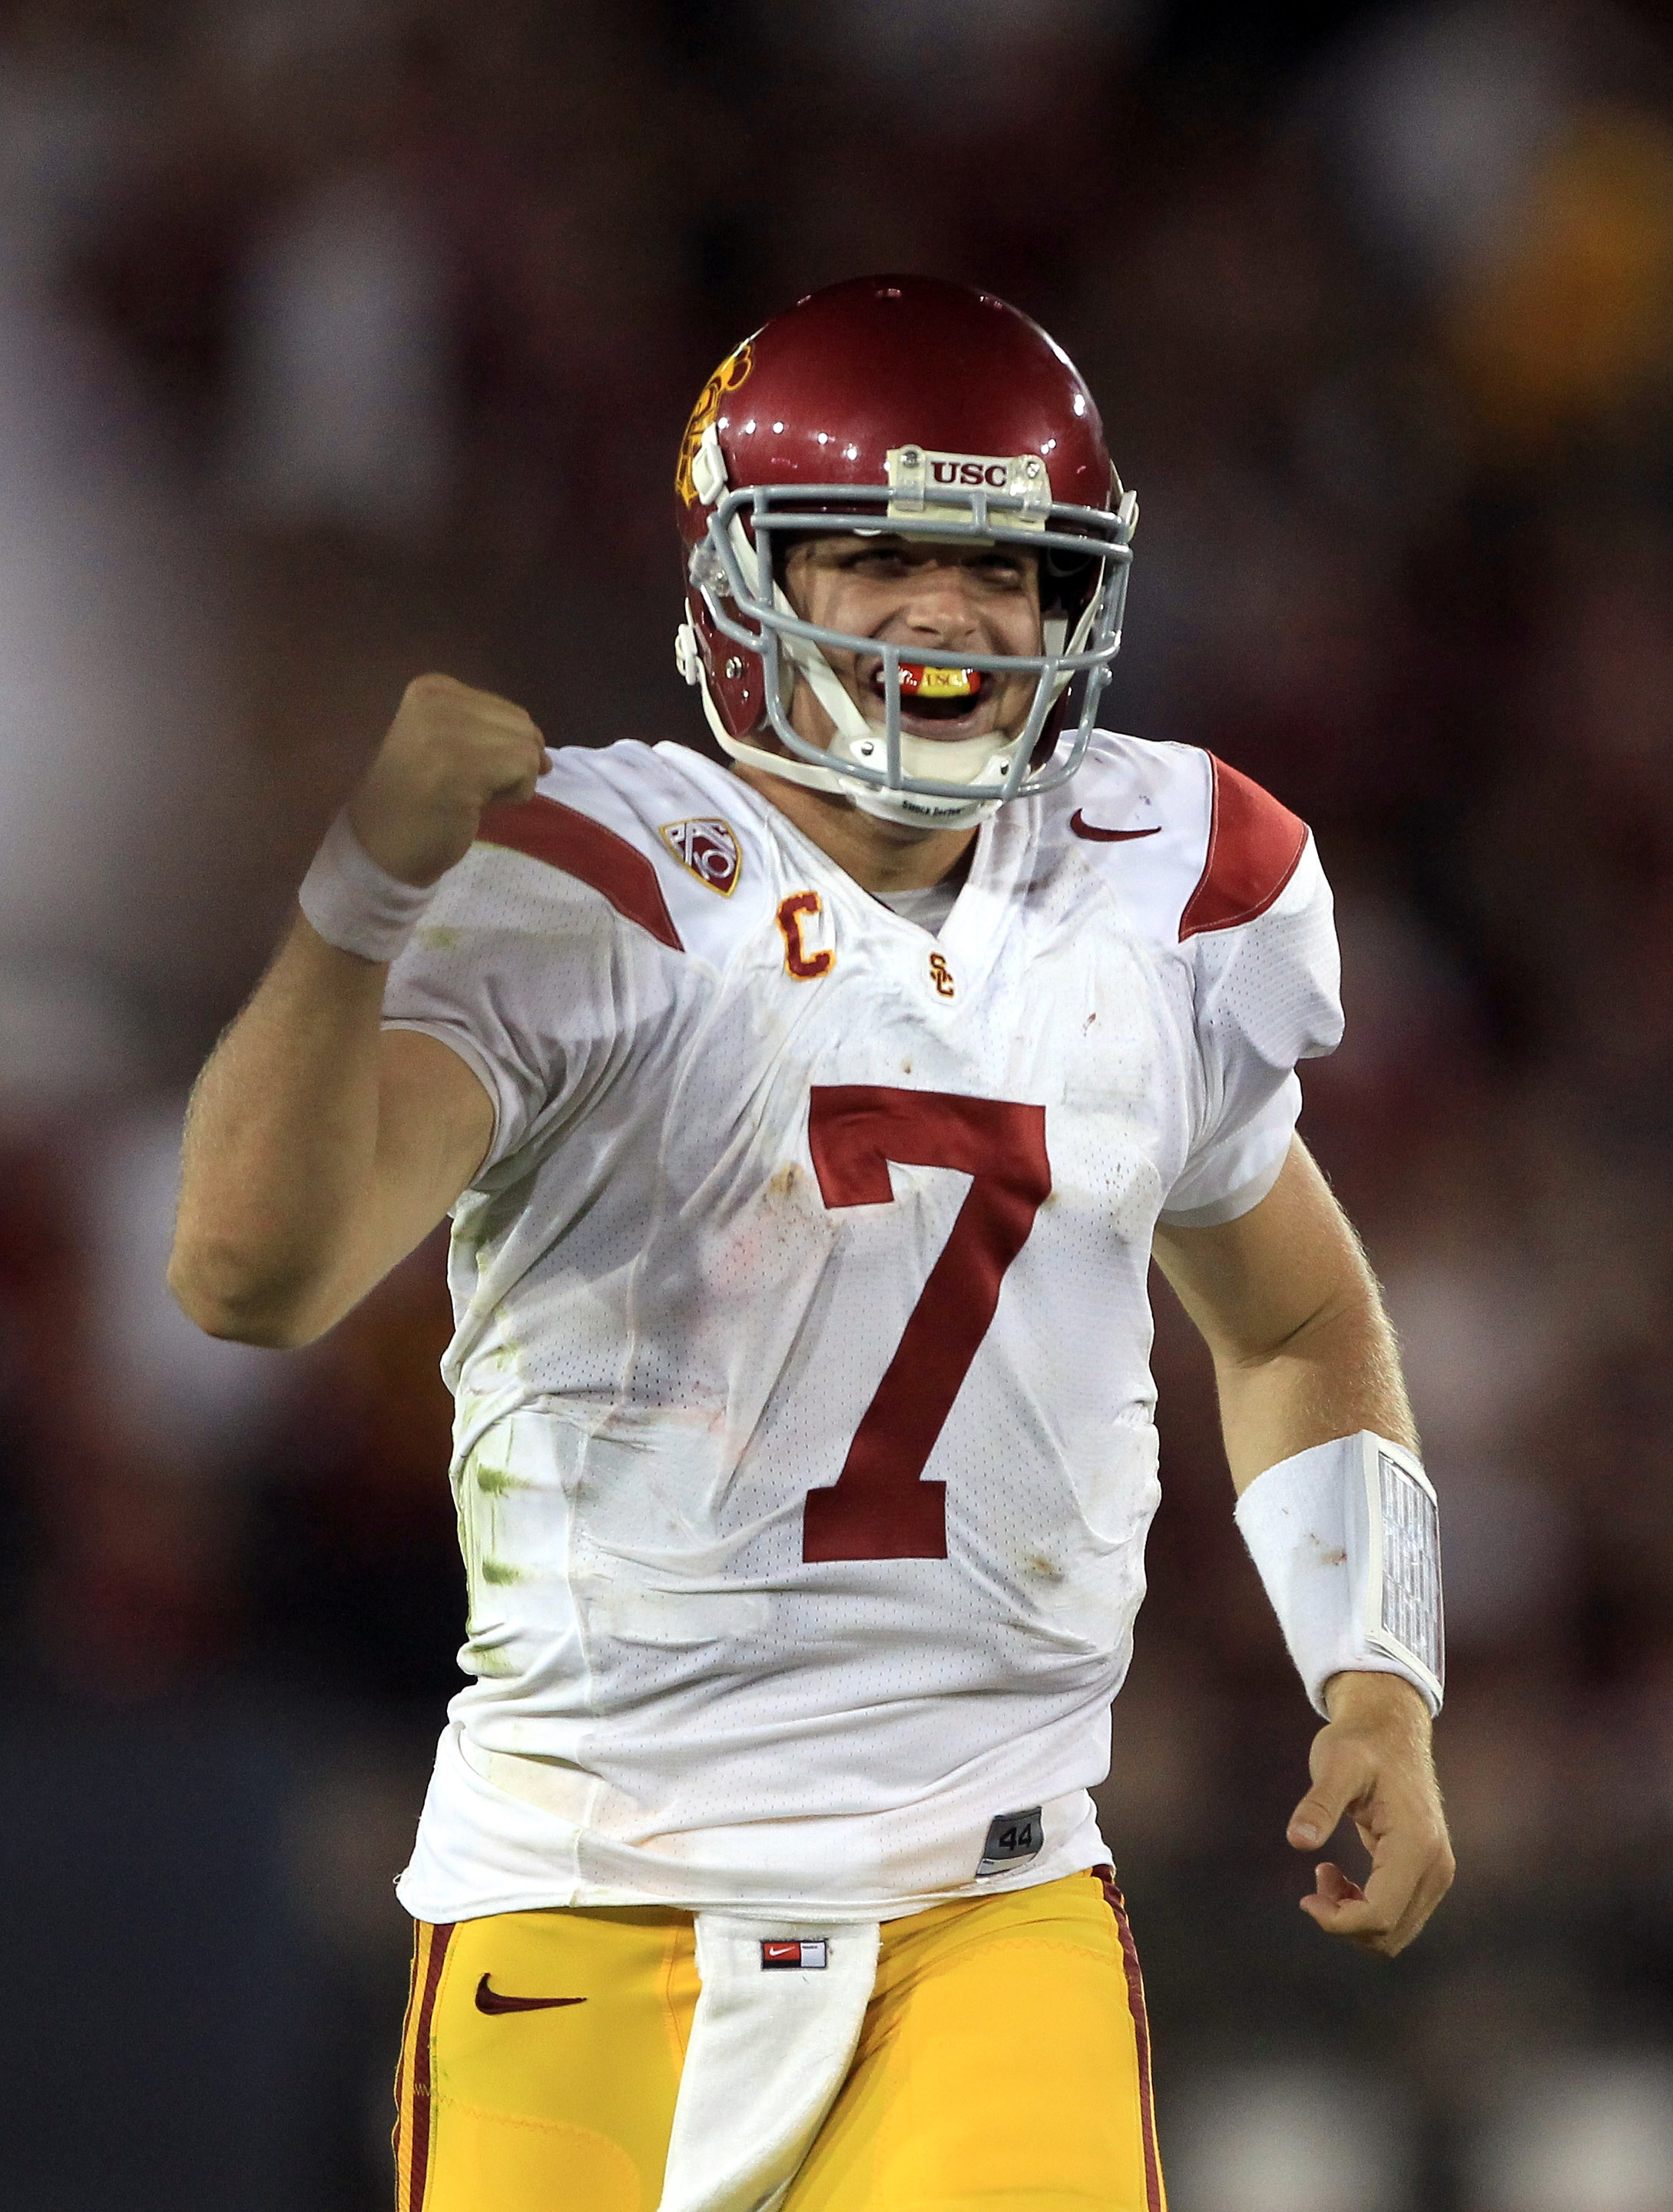 PALO ALTO, CA - OCTOBER 09:  Matt Barkley #7 celebrates after Robert Woods #13 of the USC Trojans ran the ball in for a touchdown against the Stanford Cardinal at Stanford Stadium on October 9, 2010 in Palo Alto, California.  (Photo by Ezra Shaw/Getty Ima